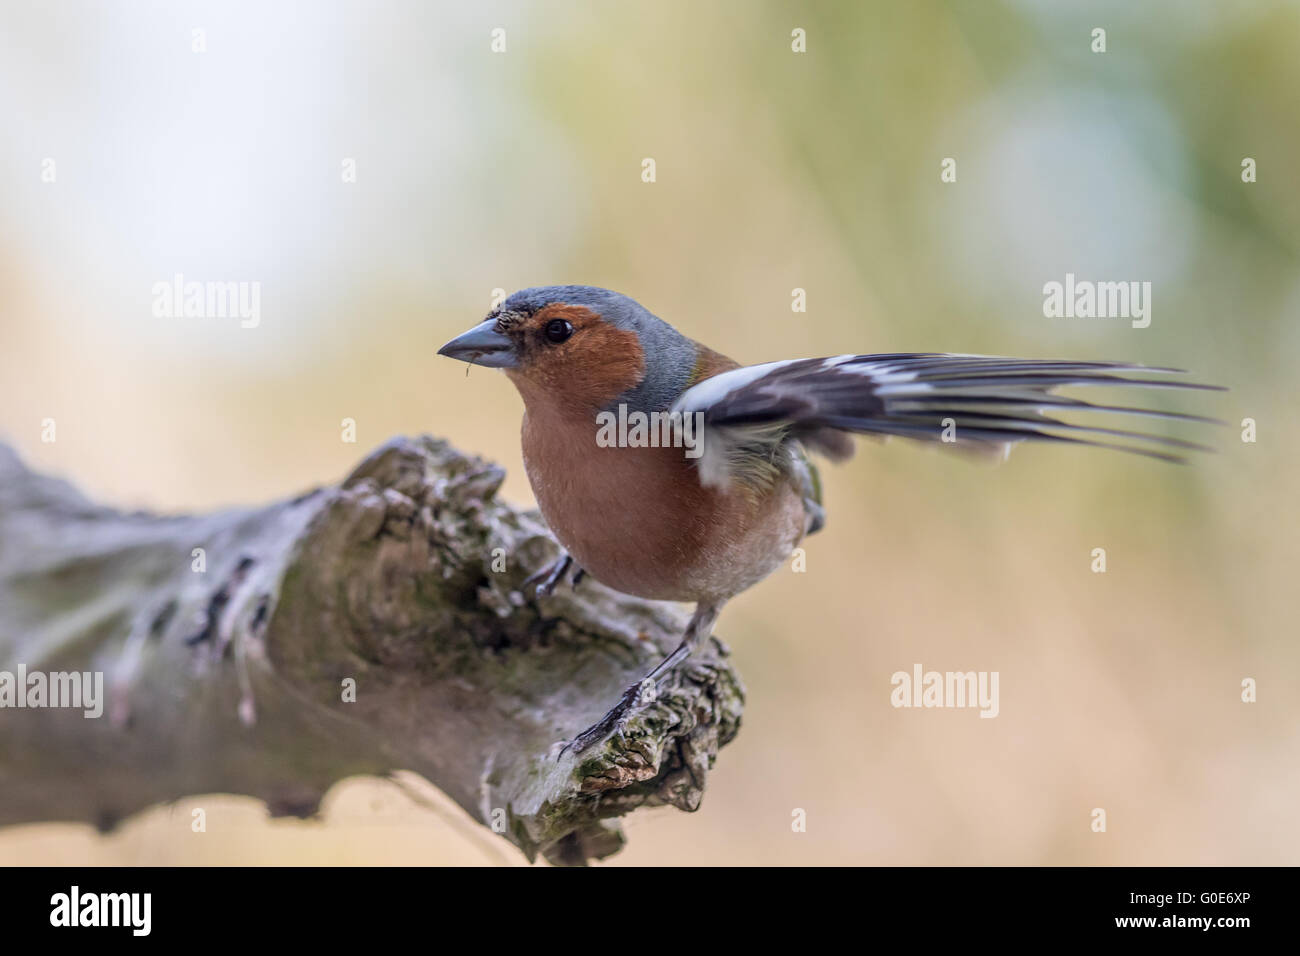 Fluttering Chaffinch - Stock Image